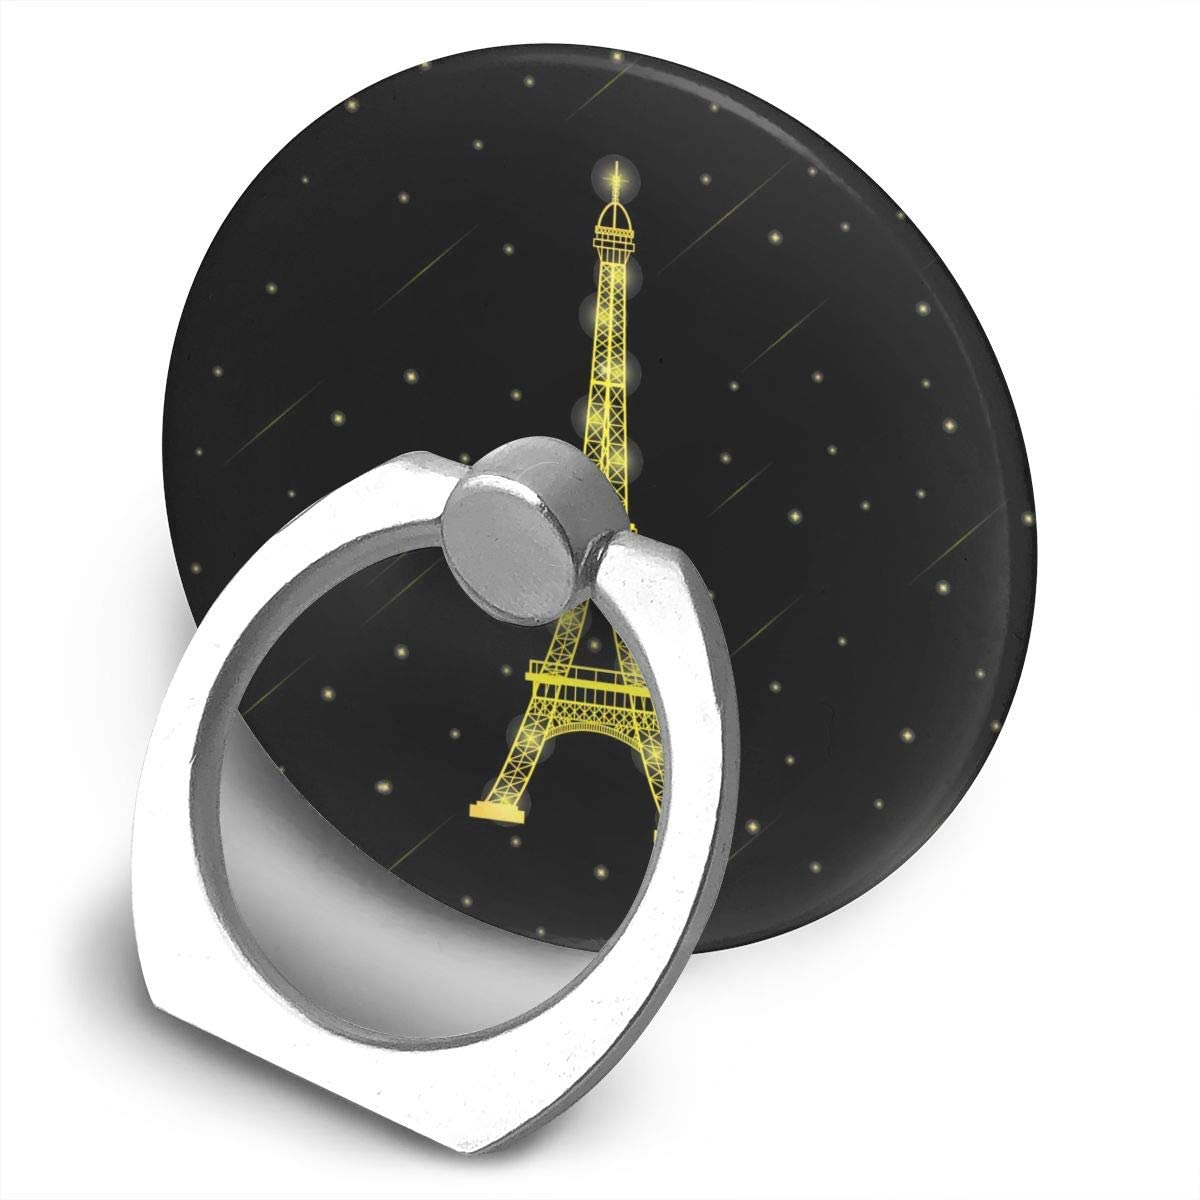 Cell Phone Ring Holder Stand Gloden Paris Eiffel Tower in Stars Falling Around,Black Adjustable 360°Rotation Round Universal Finger Grip Loop Kickstand with Silver Metal Phone Holder for Women Kids M